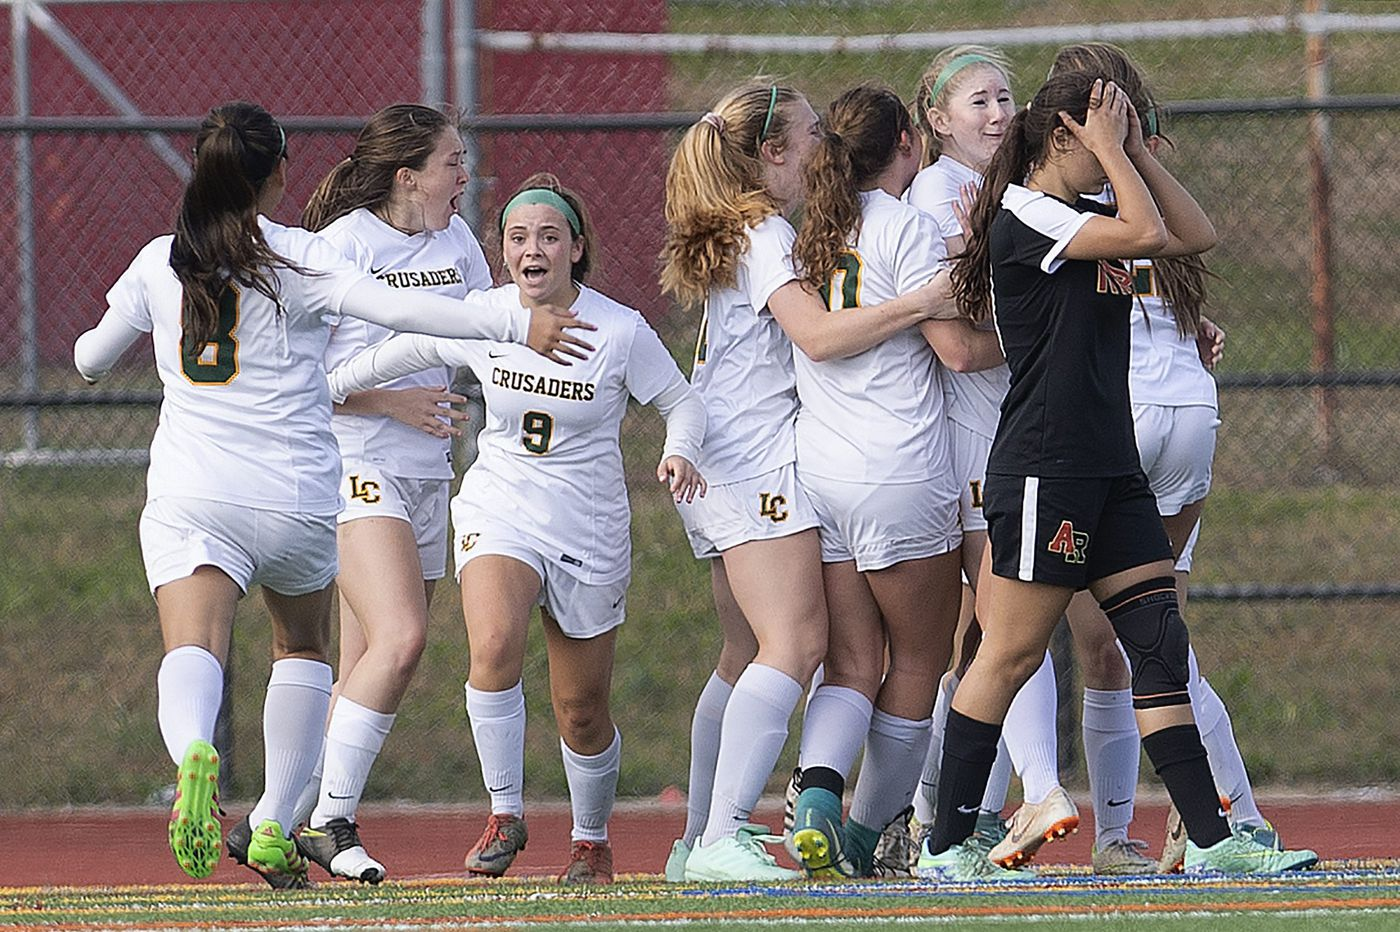 Lansdale Catholic girls' soccer wins Catholic League title